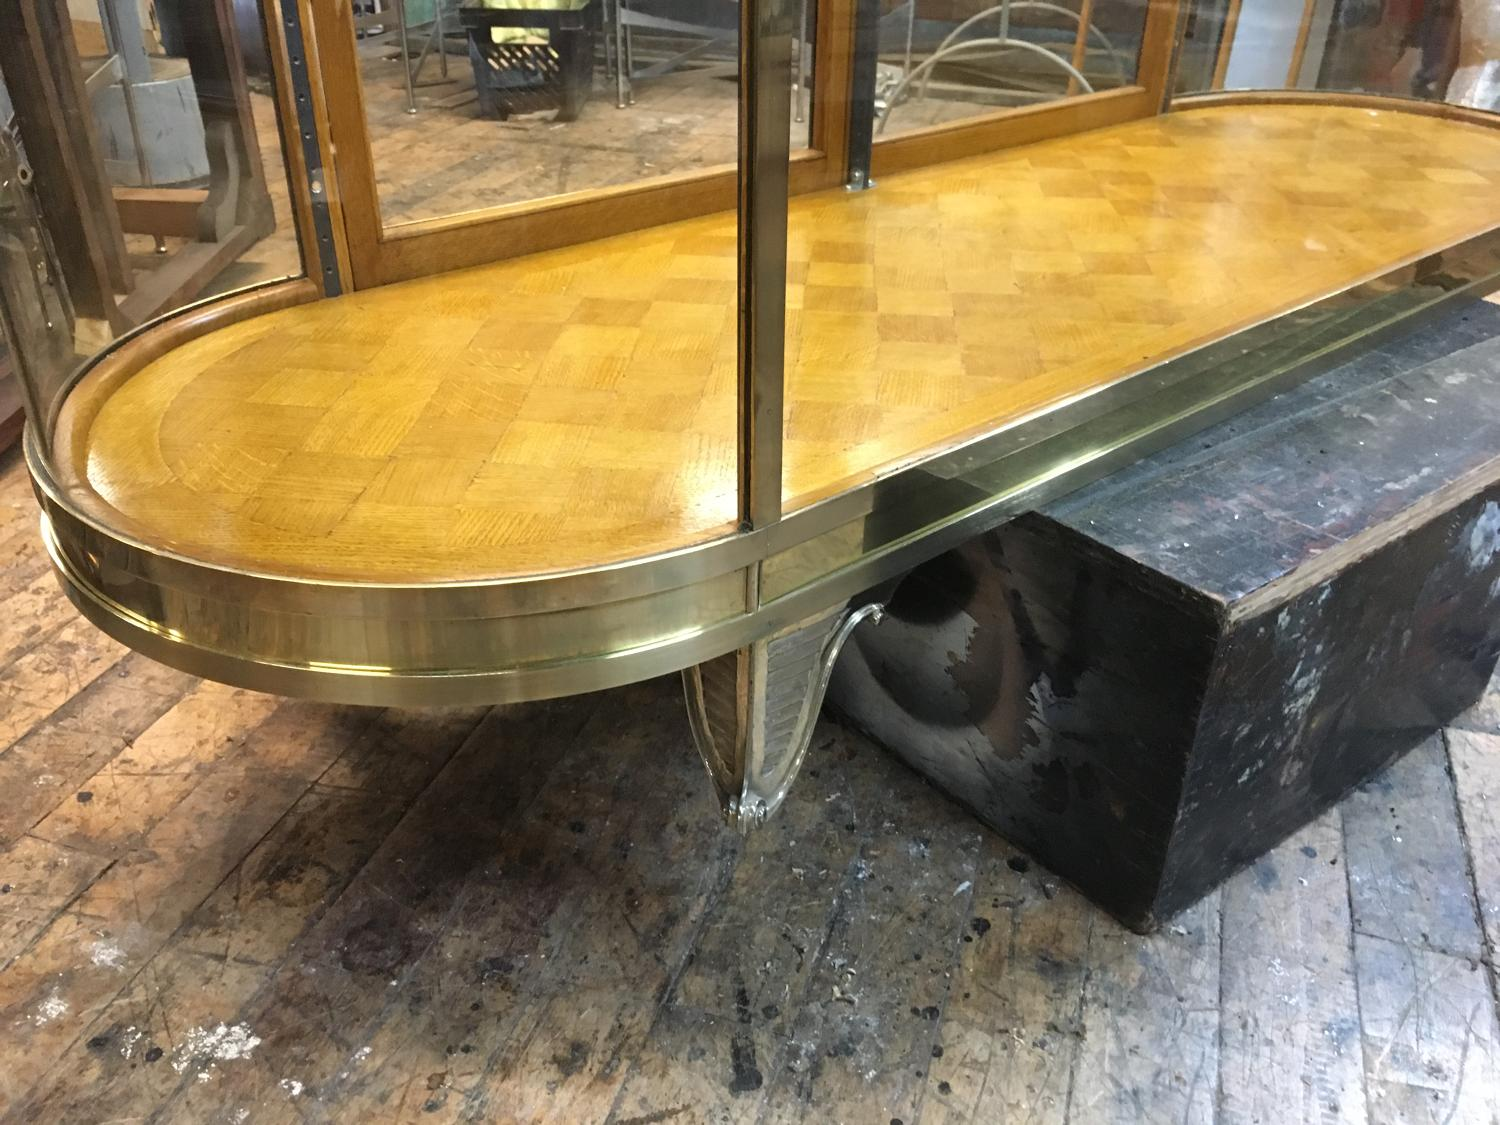 High Quality Brass Shop Counter Designed by D and A Binder